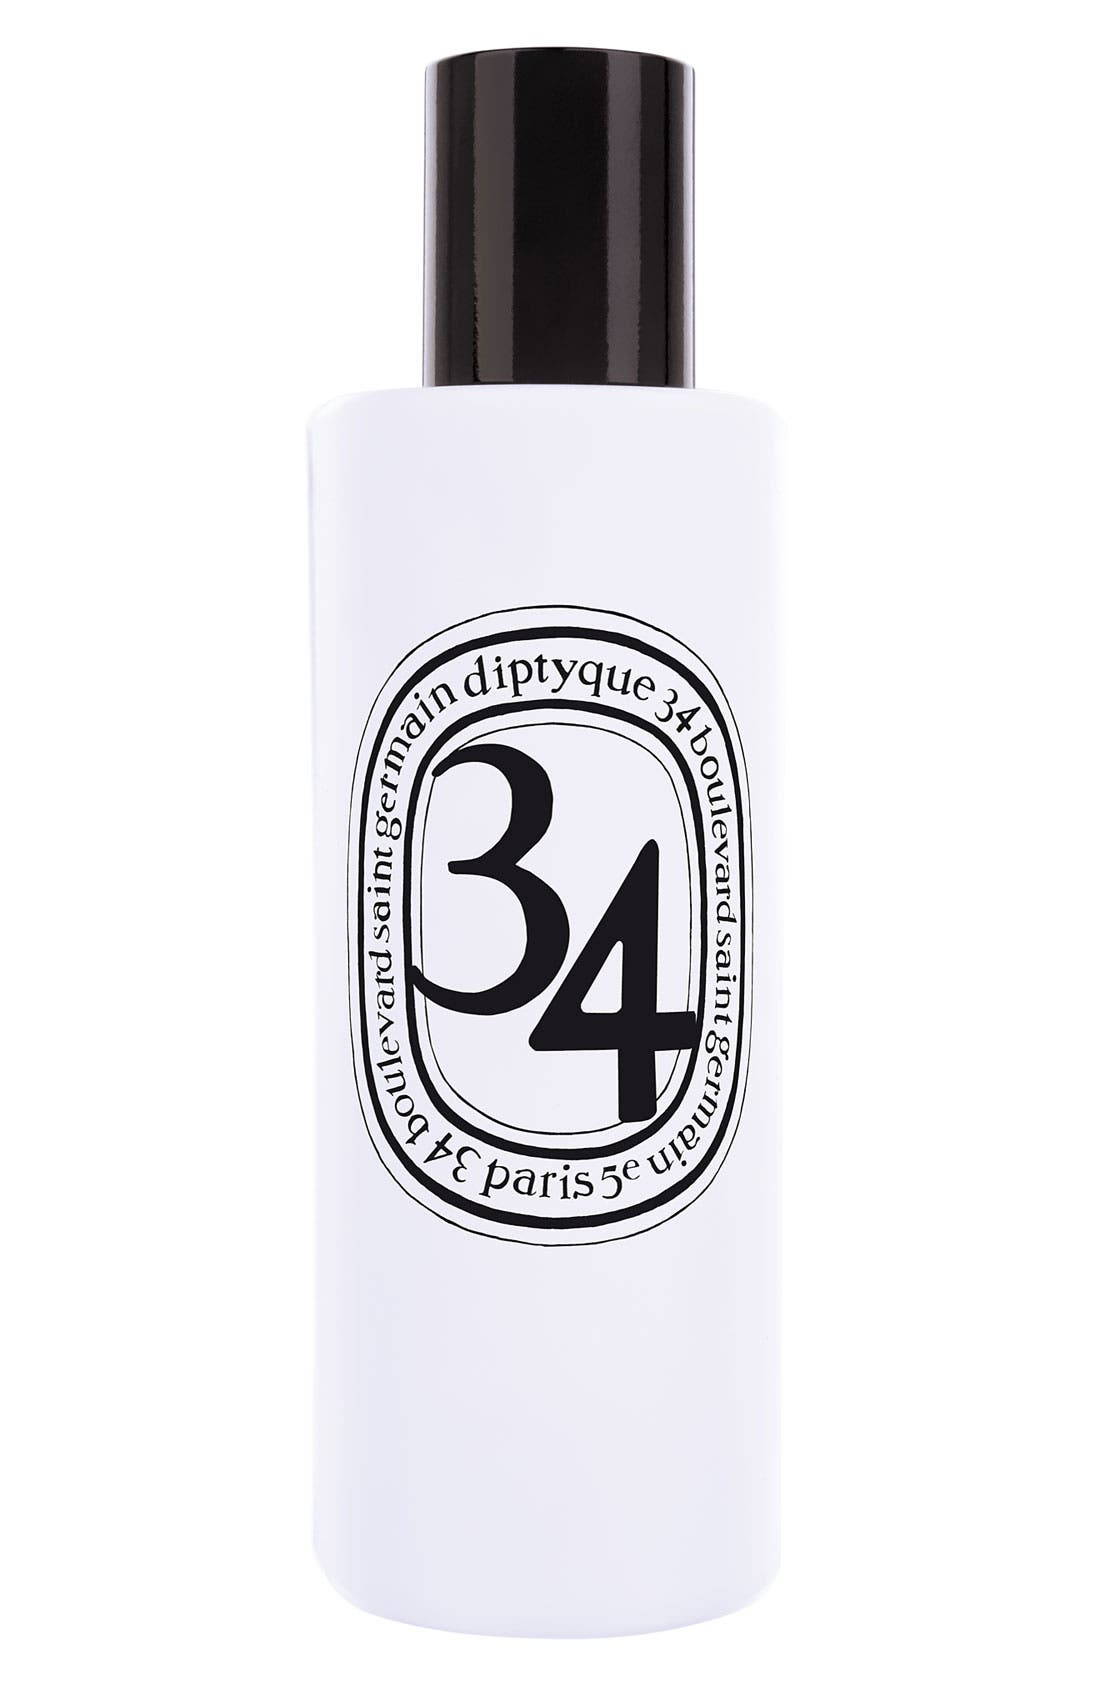 DIPTYQUE '34' Room Spray